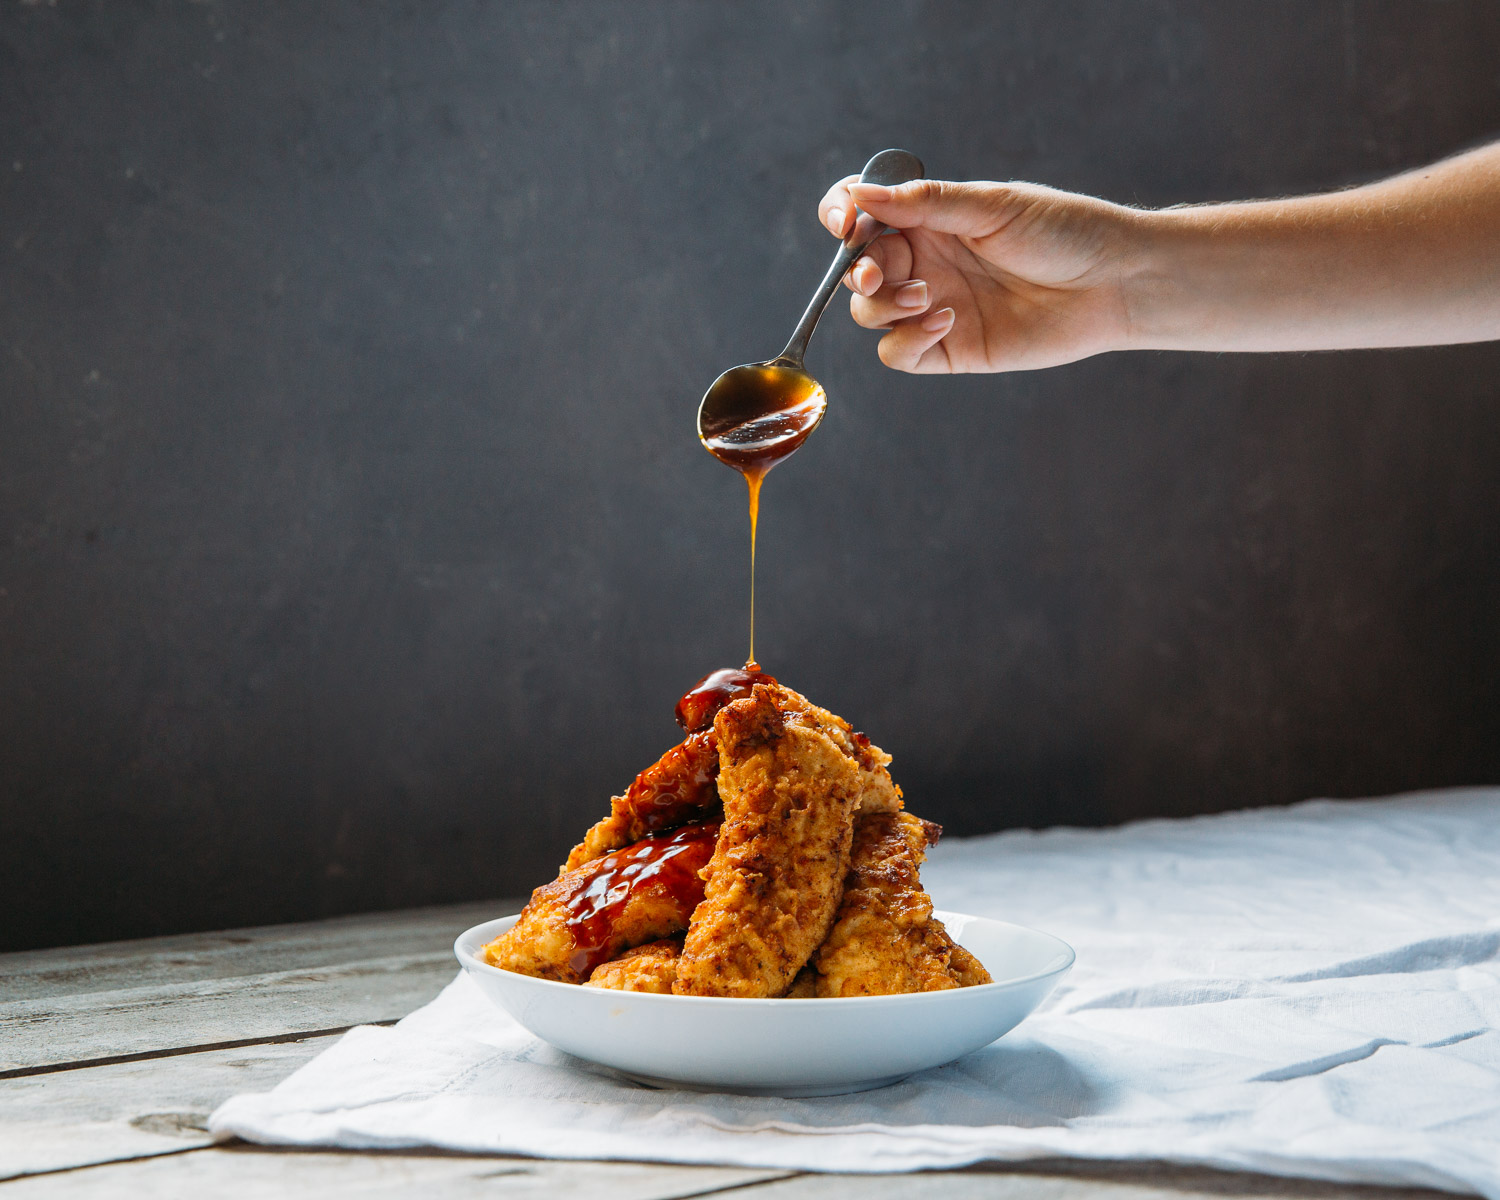 Serve up some fried beauty at your next dinner or get-together and relish in the many flavors.